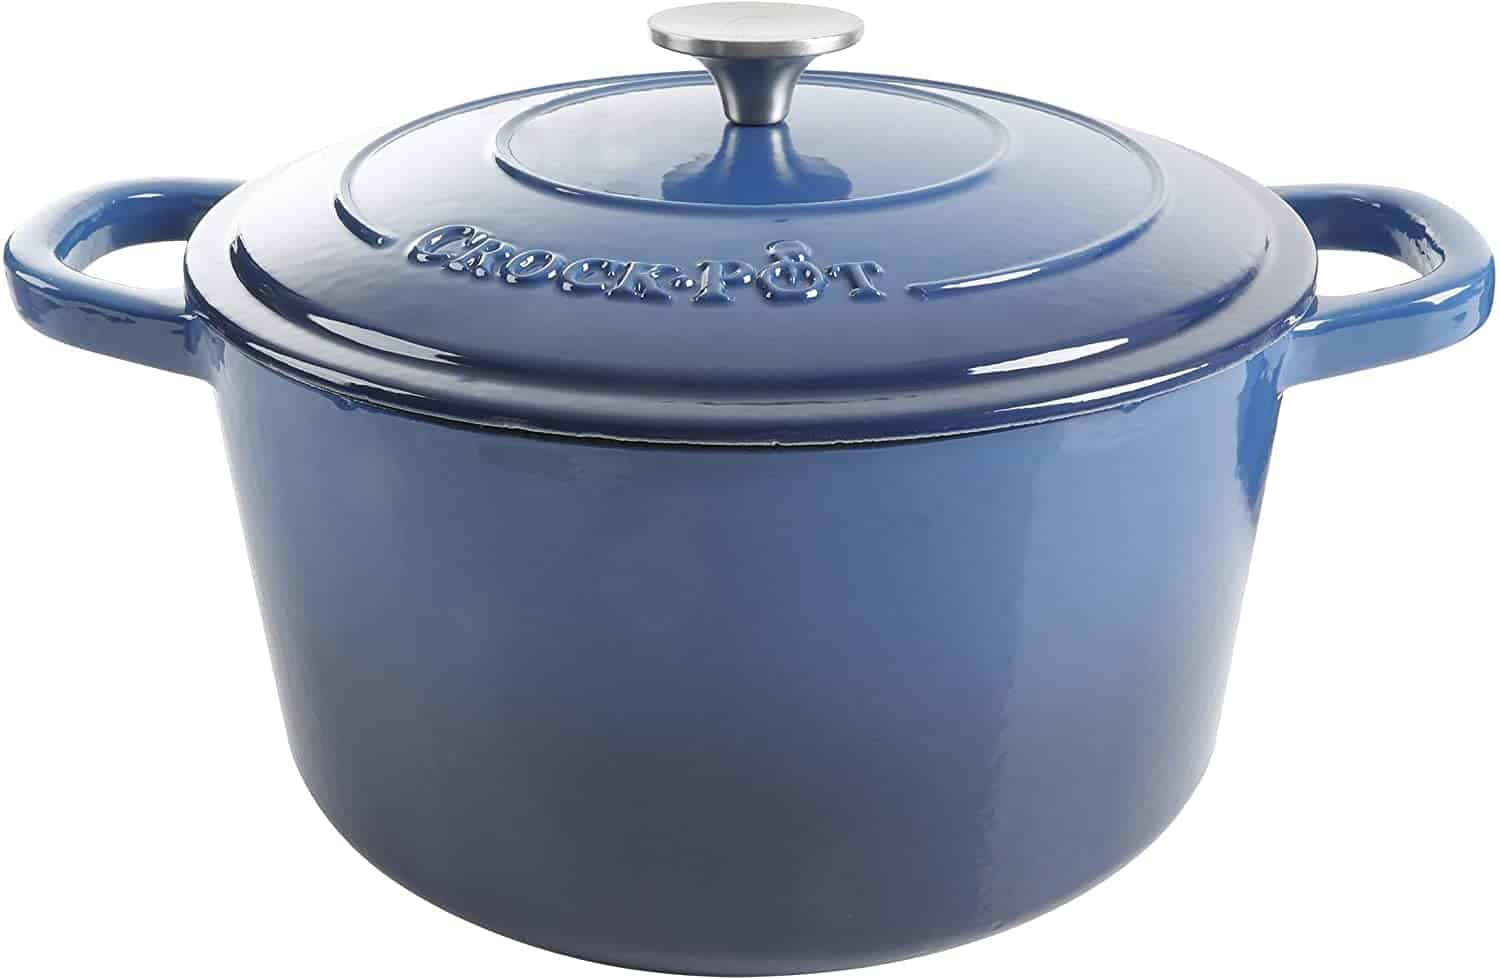 CROCK-POT 69145.02 Artisan Round Enameled Cast Iron Dutch Oven, 7-Quart, Sapphire Blue is the Best Dutch Oven in Singapore, 10 Best Dutch Ovens in Singapore Less Than $400, What are the top 5 Dutch ovens?, What are the top 10 Dutch ovens?, Why is Le Creuset the best Dutch oven?, Is it worth buying a Dutch oven?, The Best Dutch Ovens for Baking, Braising, and Stew, Can I use a crockpot instead of a Dutch oven?, Why are Dutch ovens so popular?